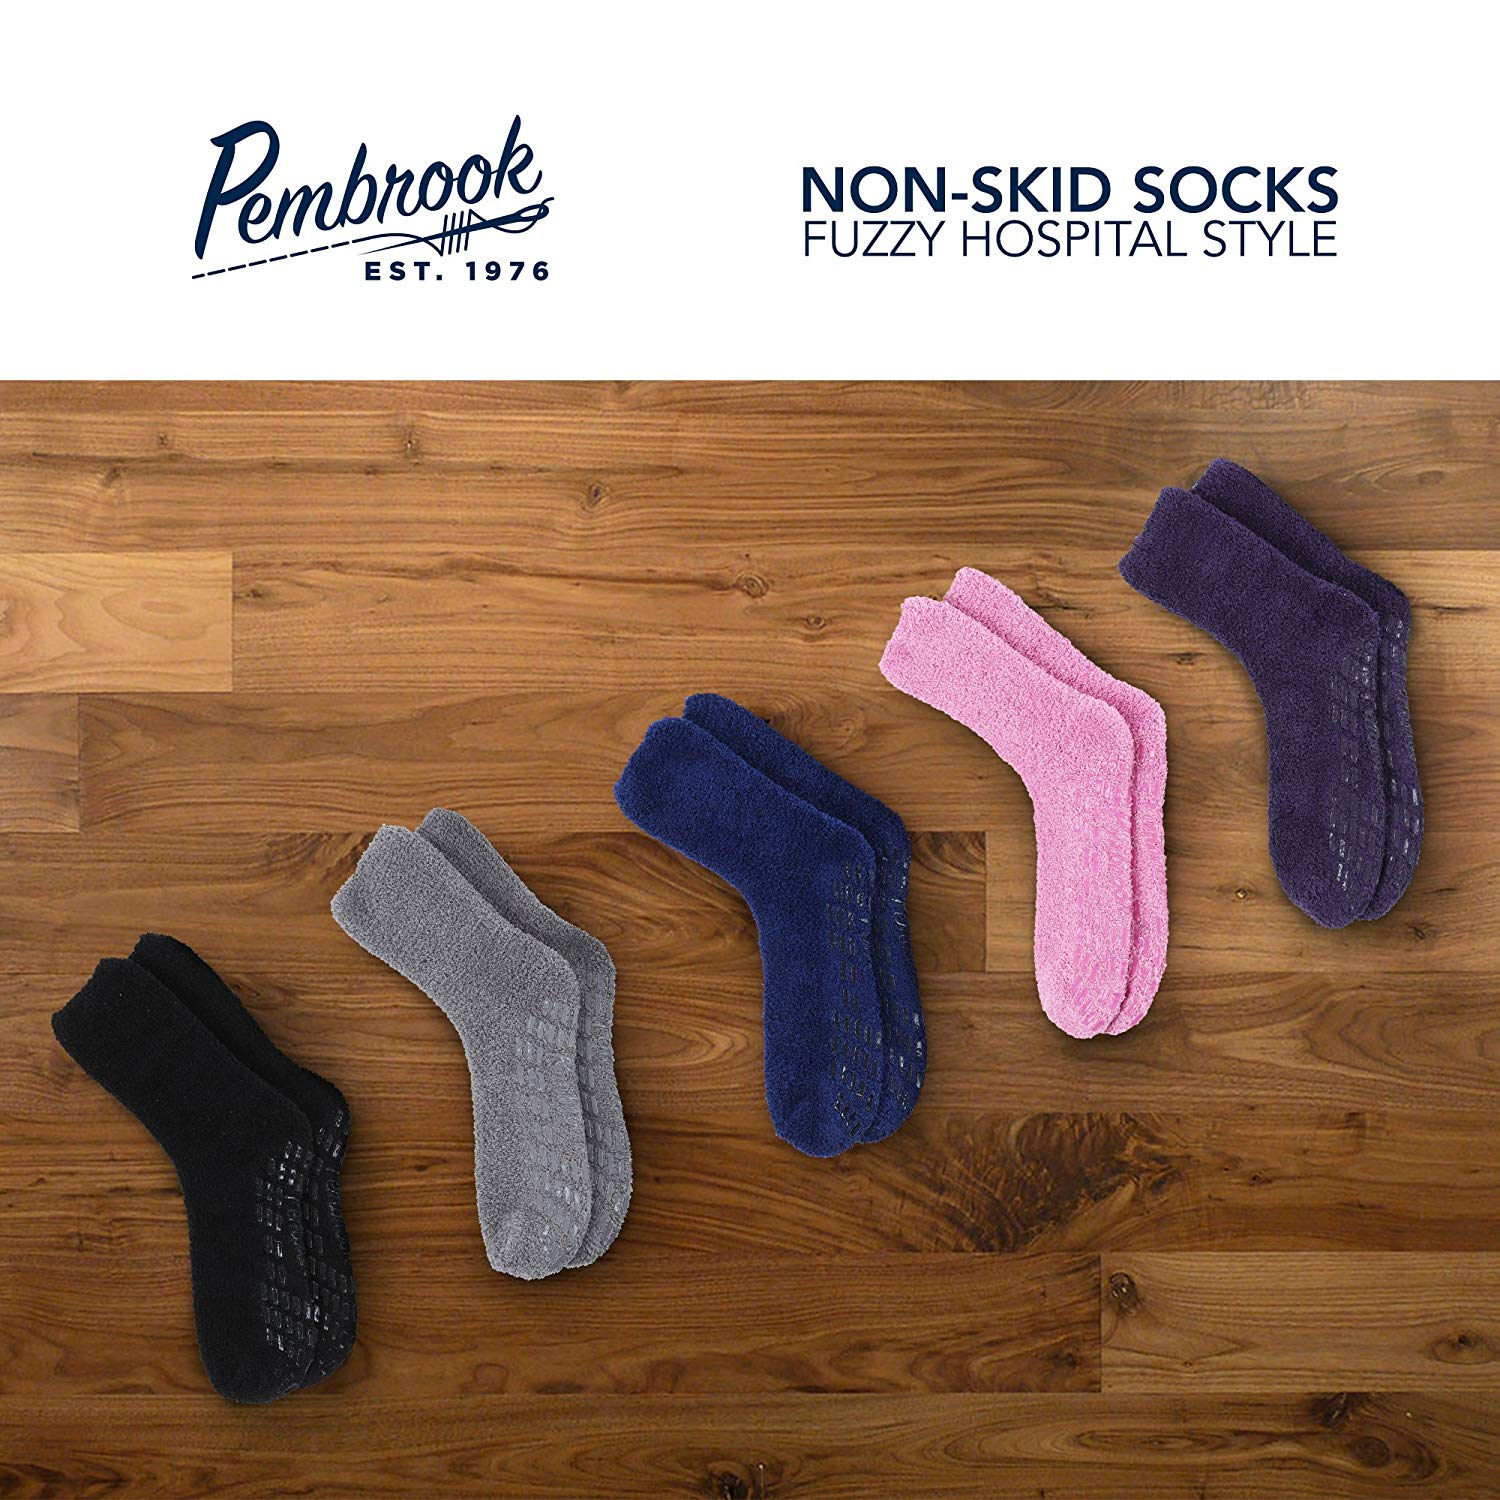 Pembrook Non Skid/Slip Socks – Fuzzy Slipper Hospital Socks (6 - Packs)